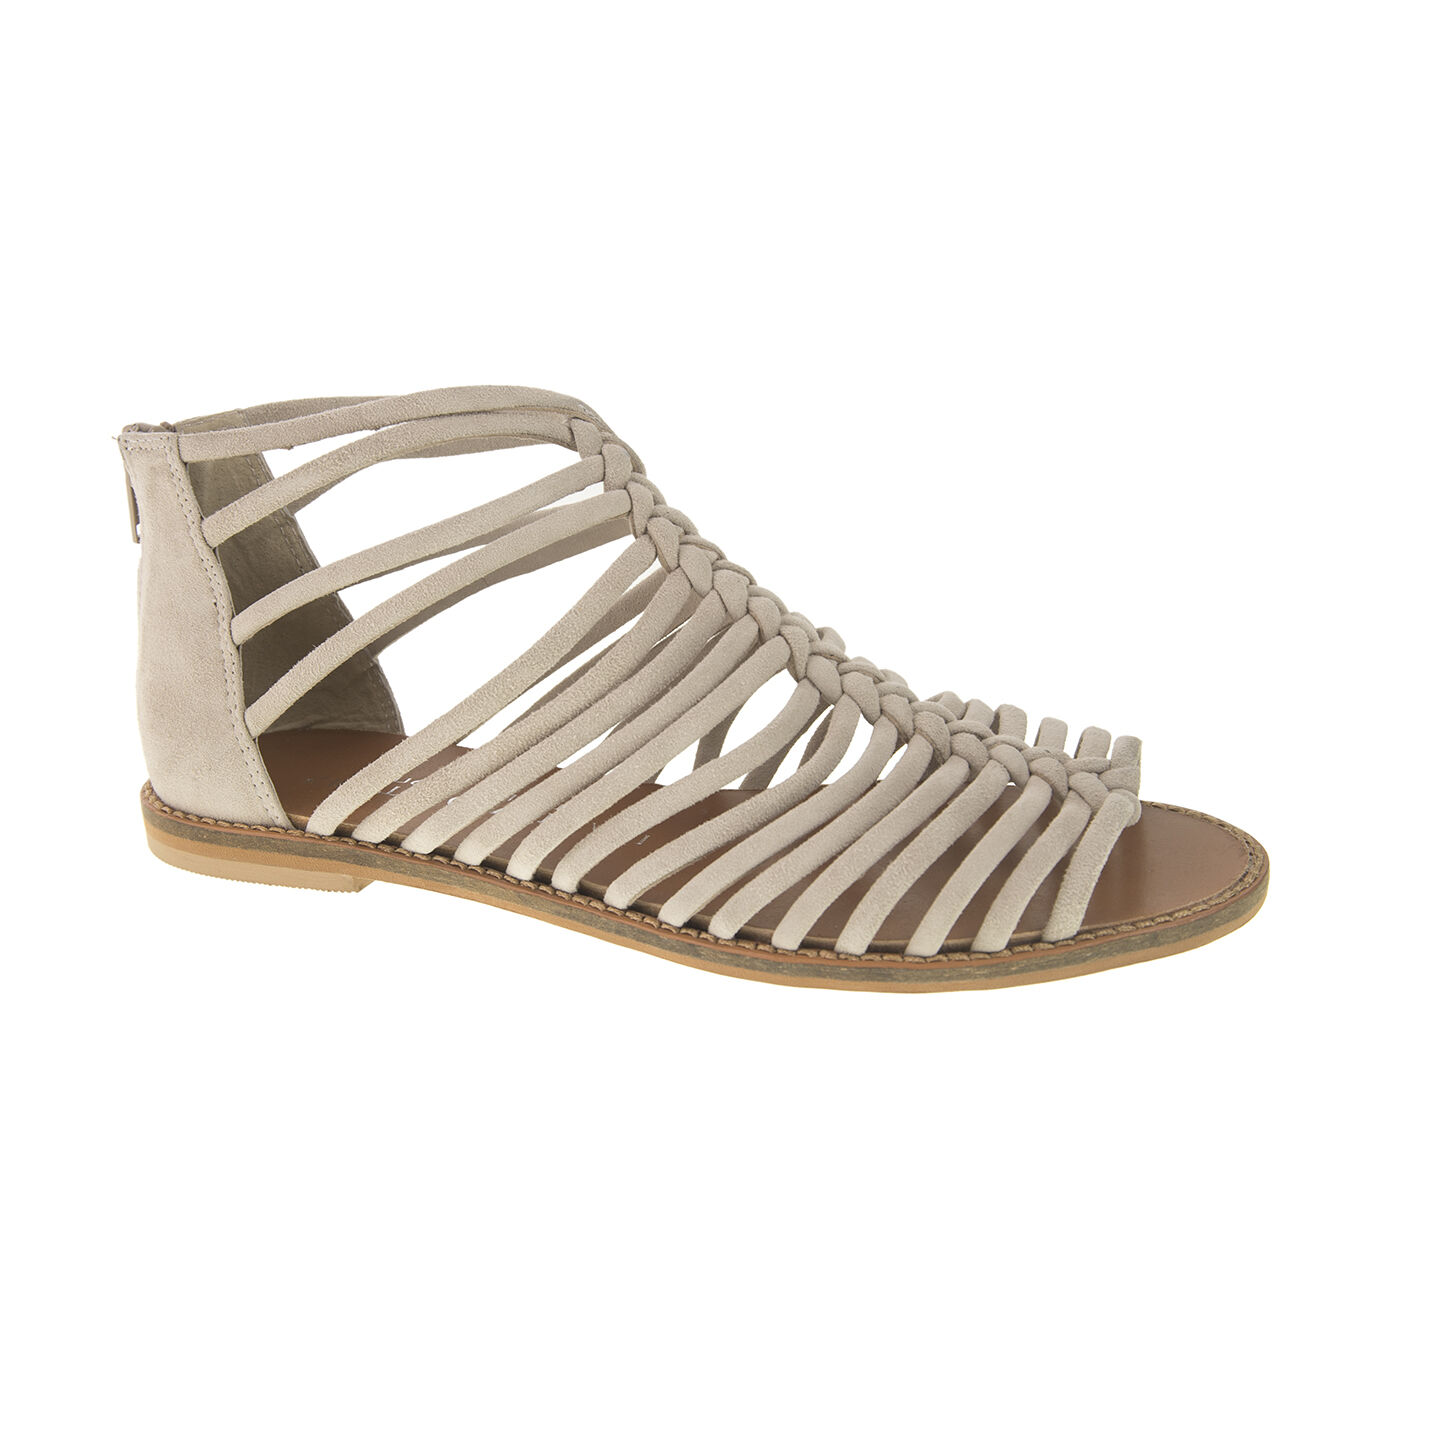 Kristin Cavallari by Chinese Laundry Bliss Suede Sandal dTtEoQ